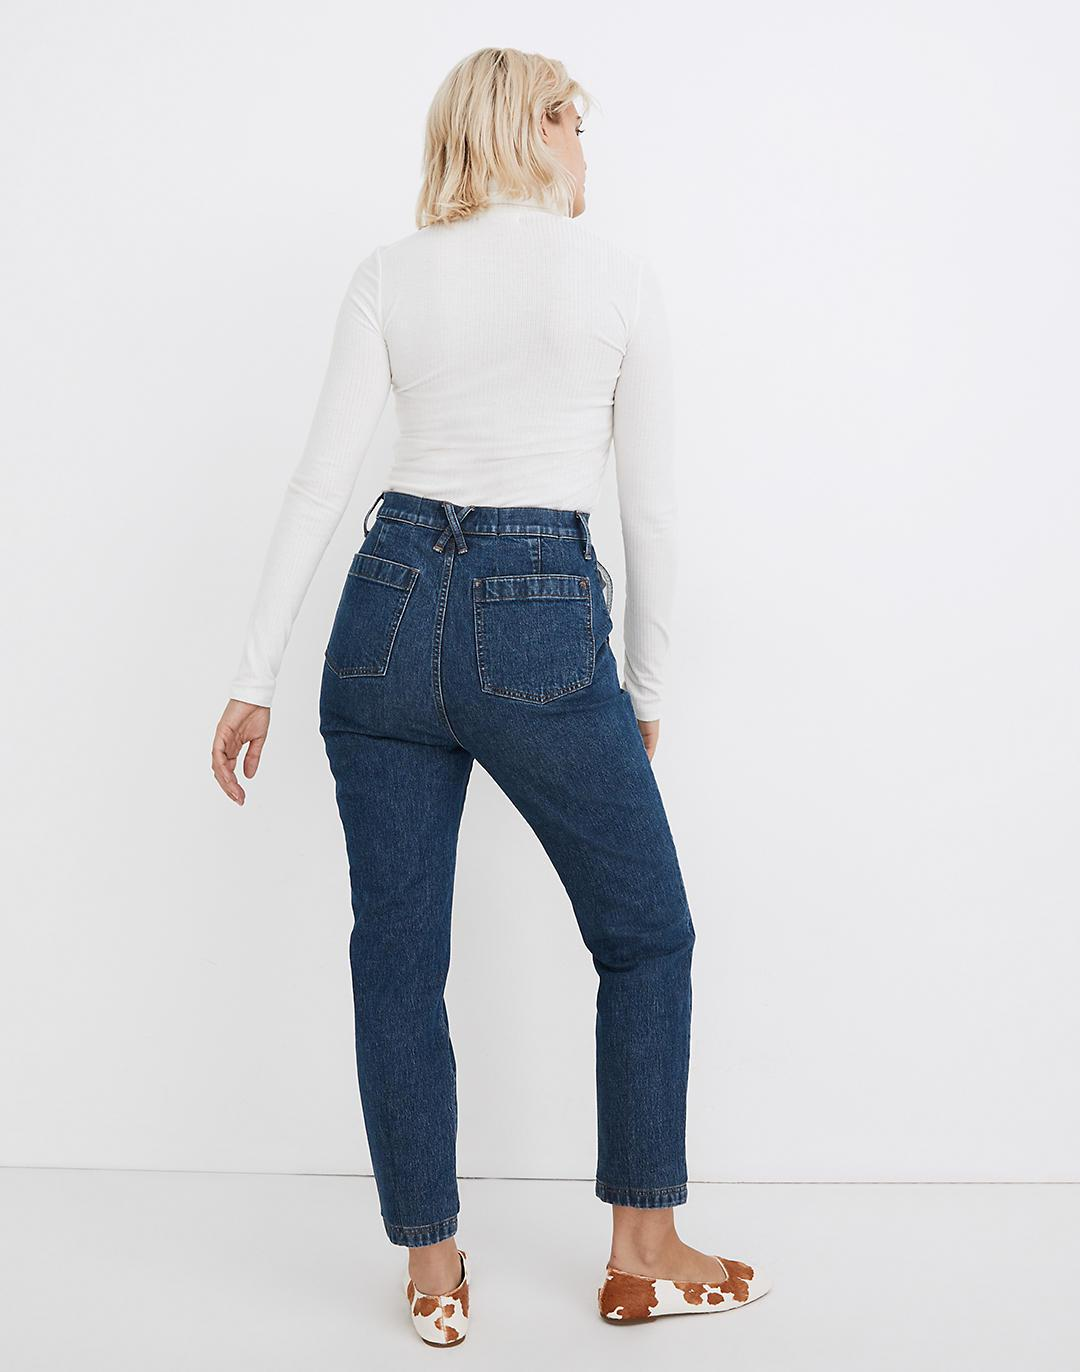 The Perfect Vintage Jean in Minot Wash: Trouser Edition 2